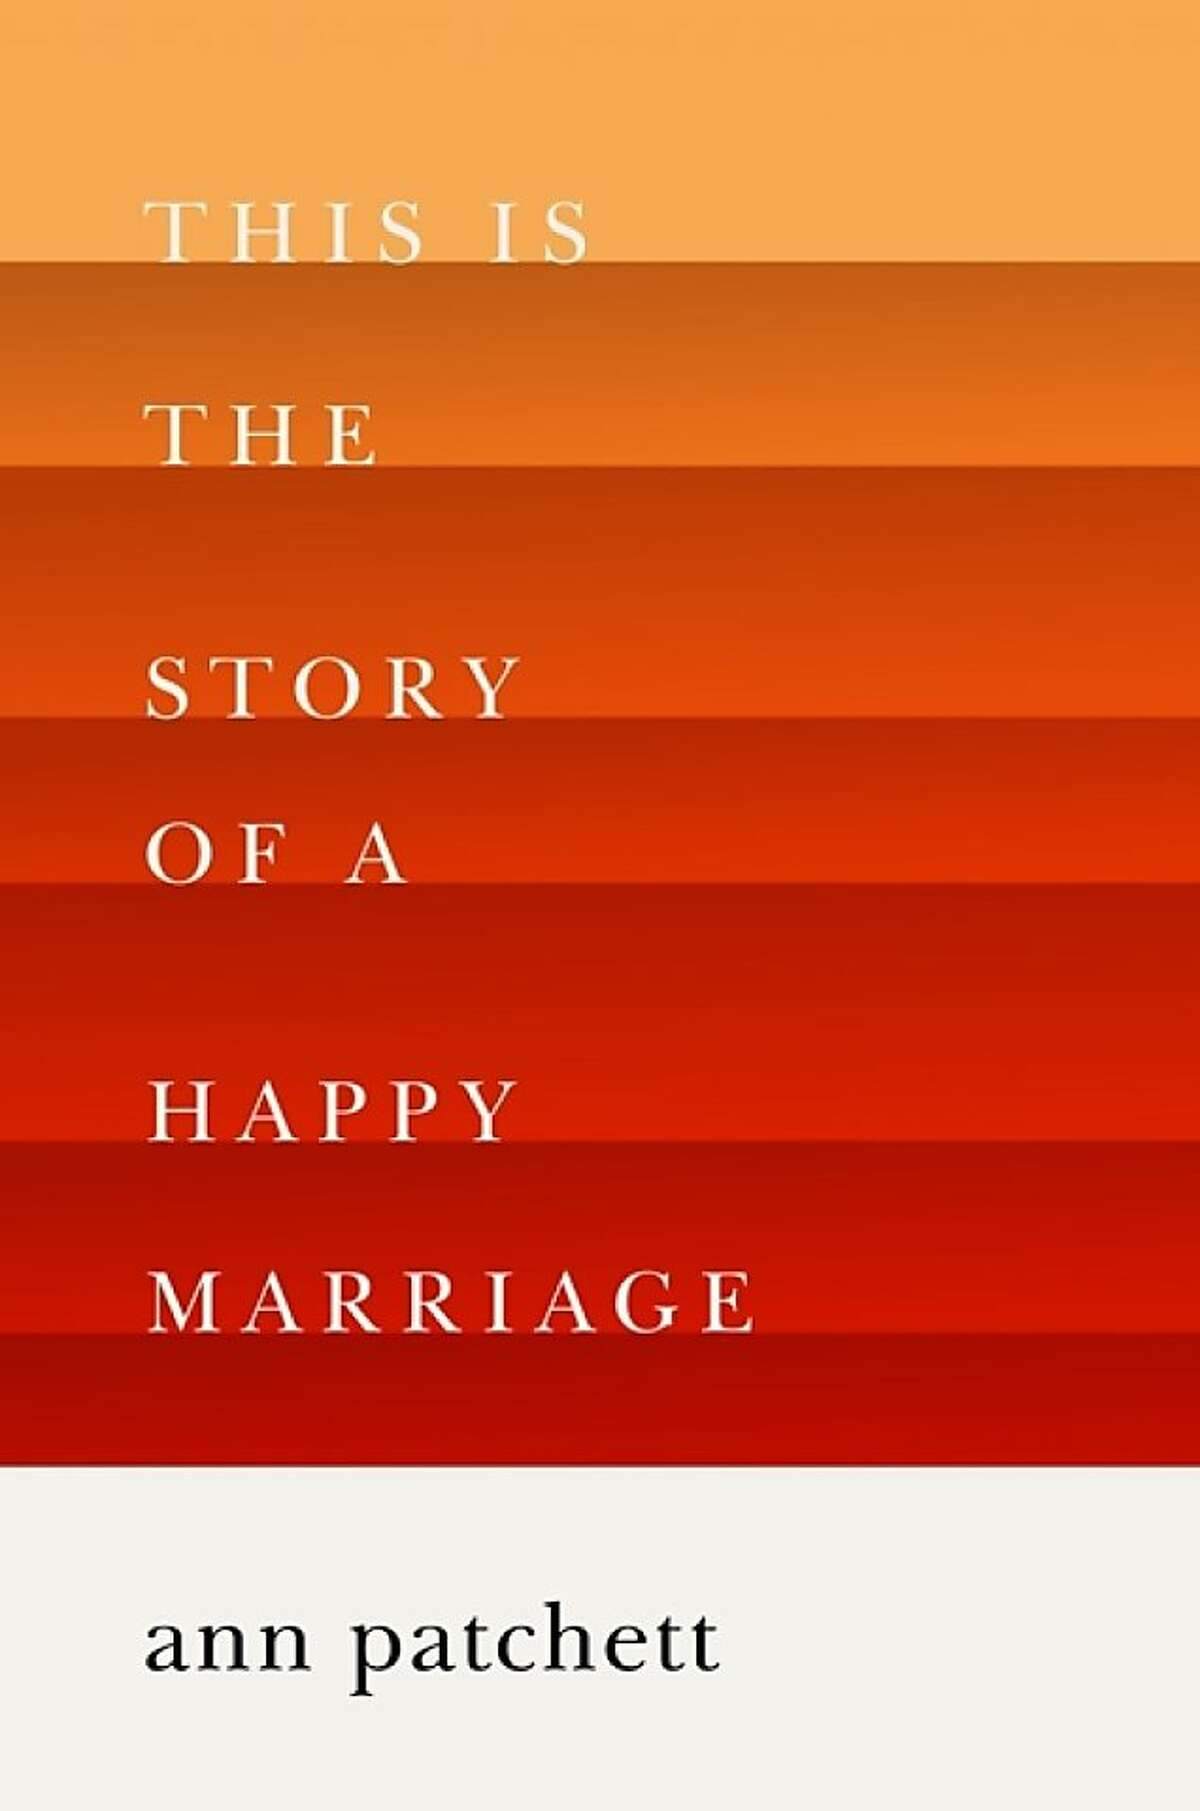 This Is the Story of a Happy Marriage, by Ann Patchett